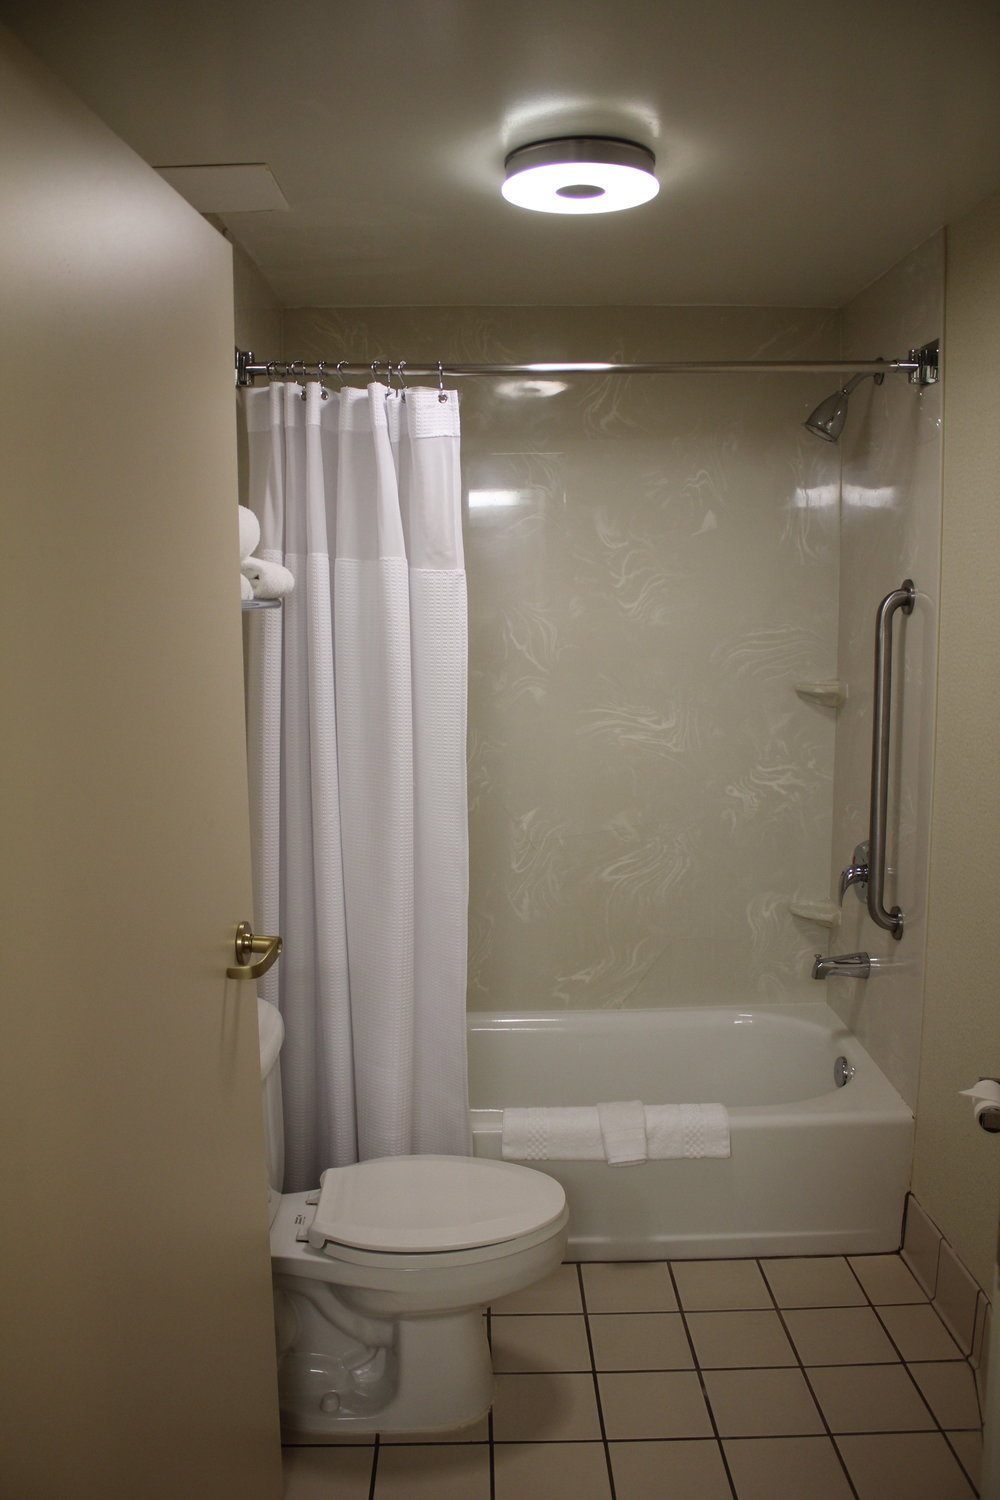 SpringHill Suites Charlotte Airport – Bathroom